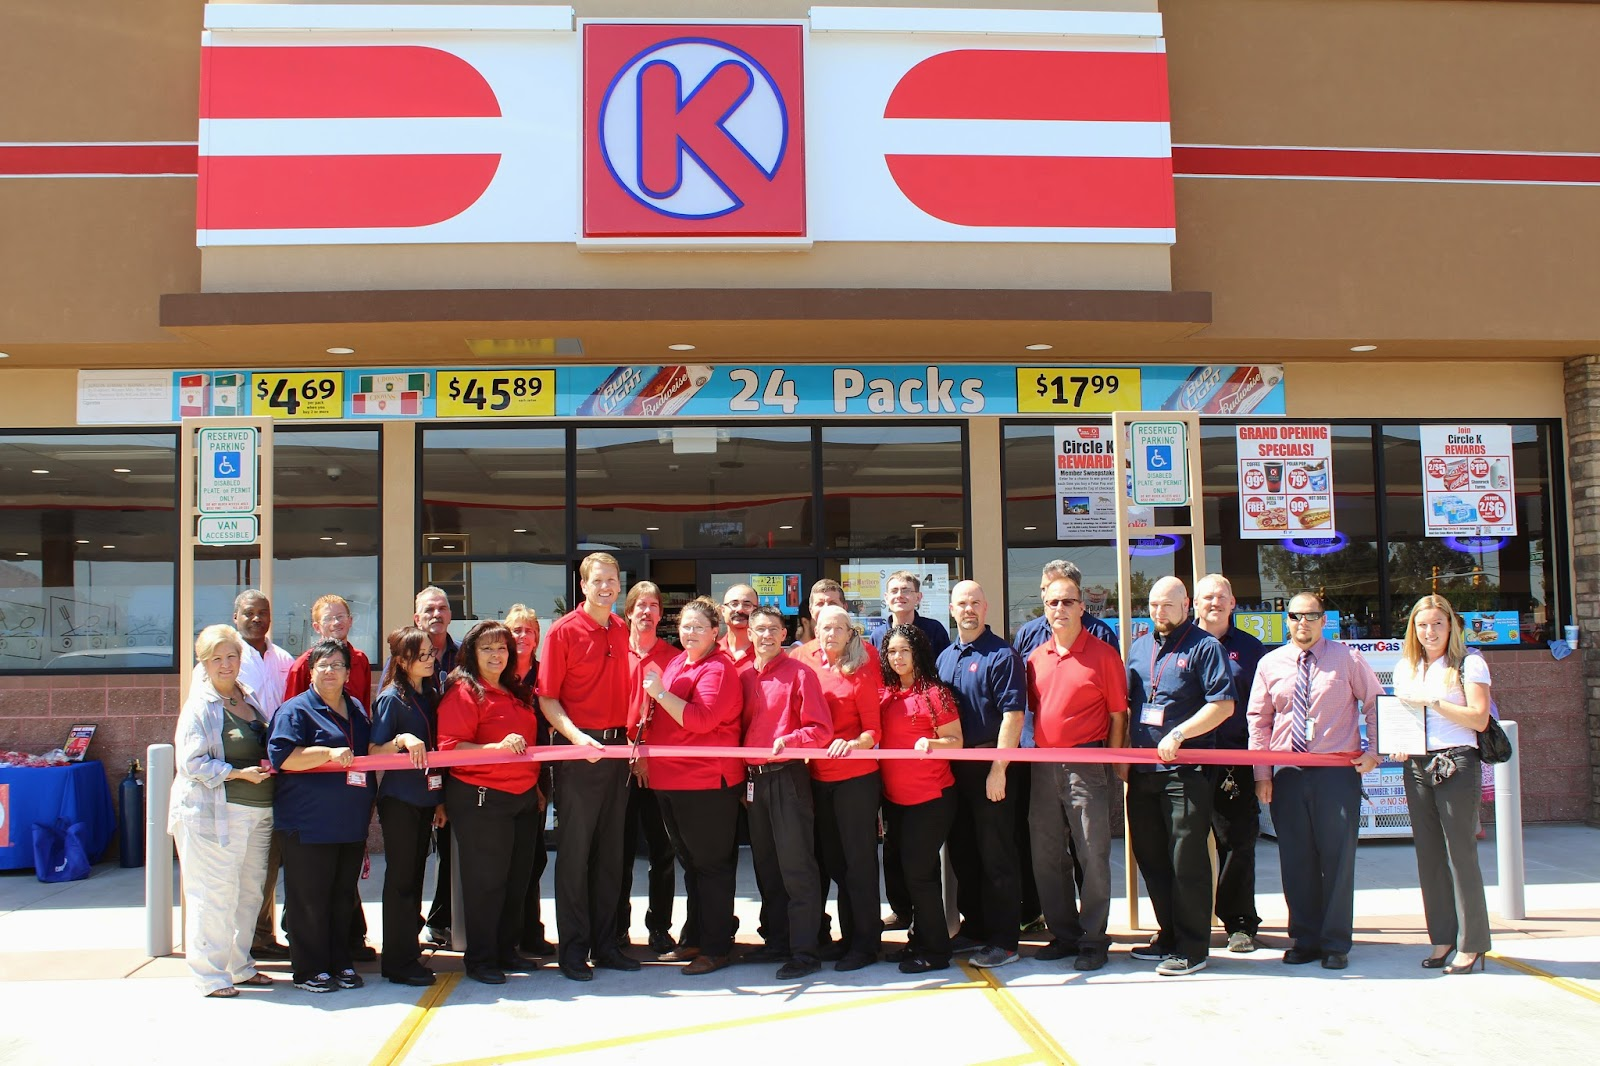 Circle K - Circle K would like to thank those that attended the Grand Opening Ceremony at our new Store located at 1395 W. Miracle Mile Road. We would like everyone to visit often to take advantage of the New Circle K Rewards Program. Don't miss out on your chance to win this 2014 Chevy Camaro with your Circle K Rewards Card.